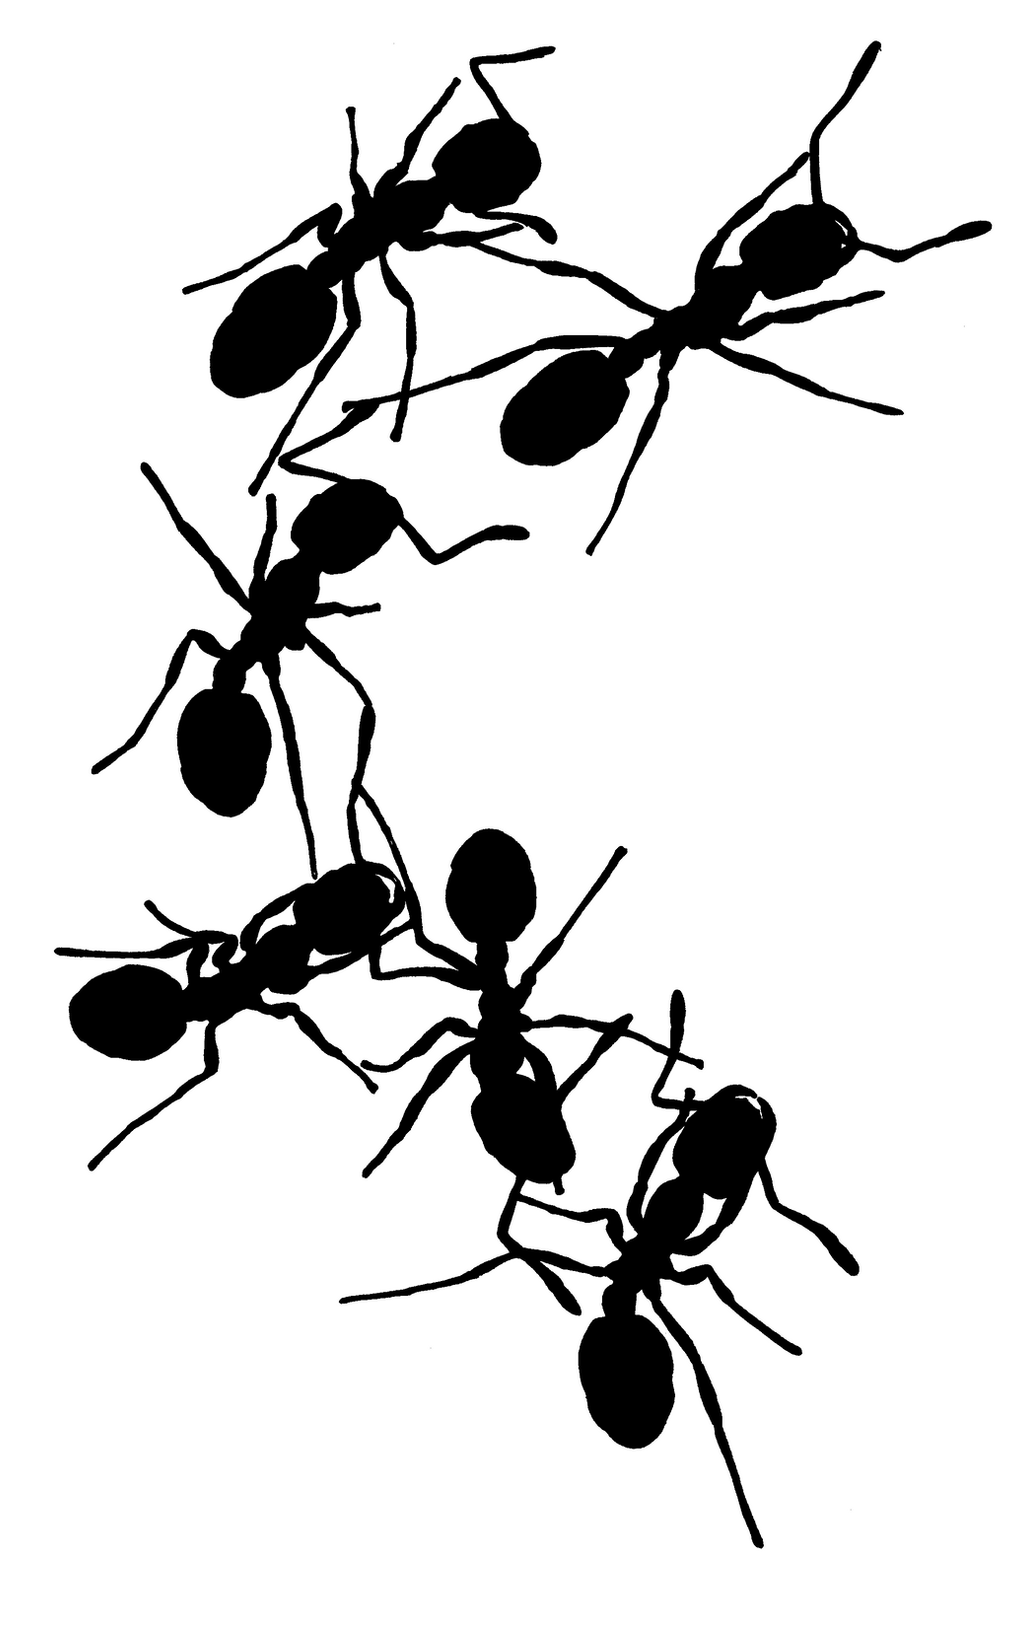 Ants  silhouette by Zu...